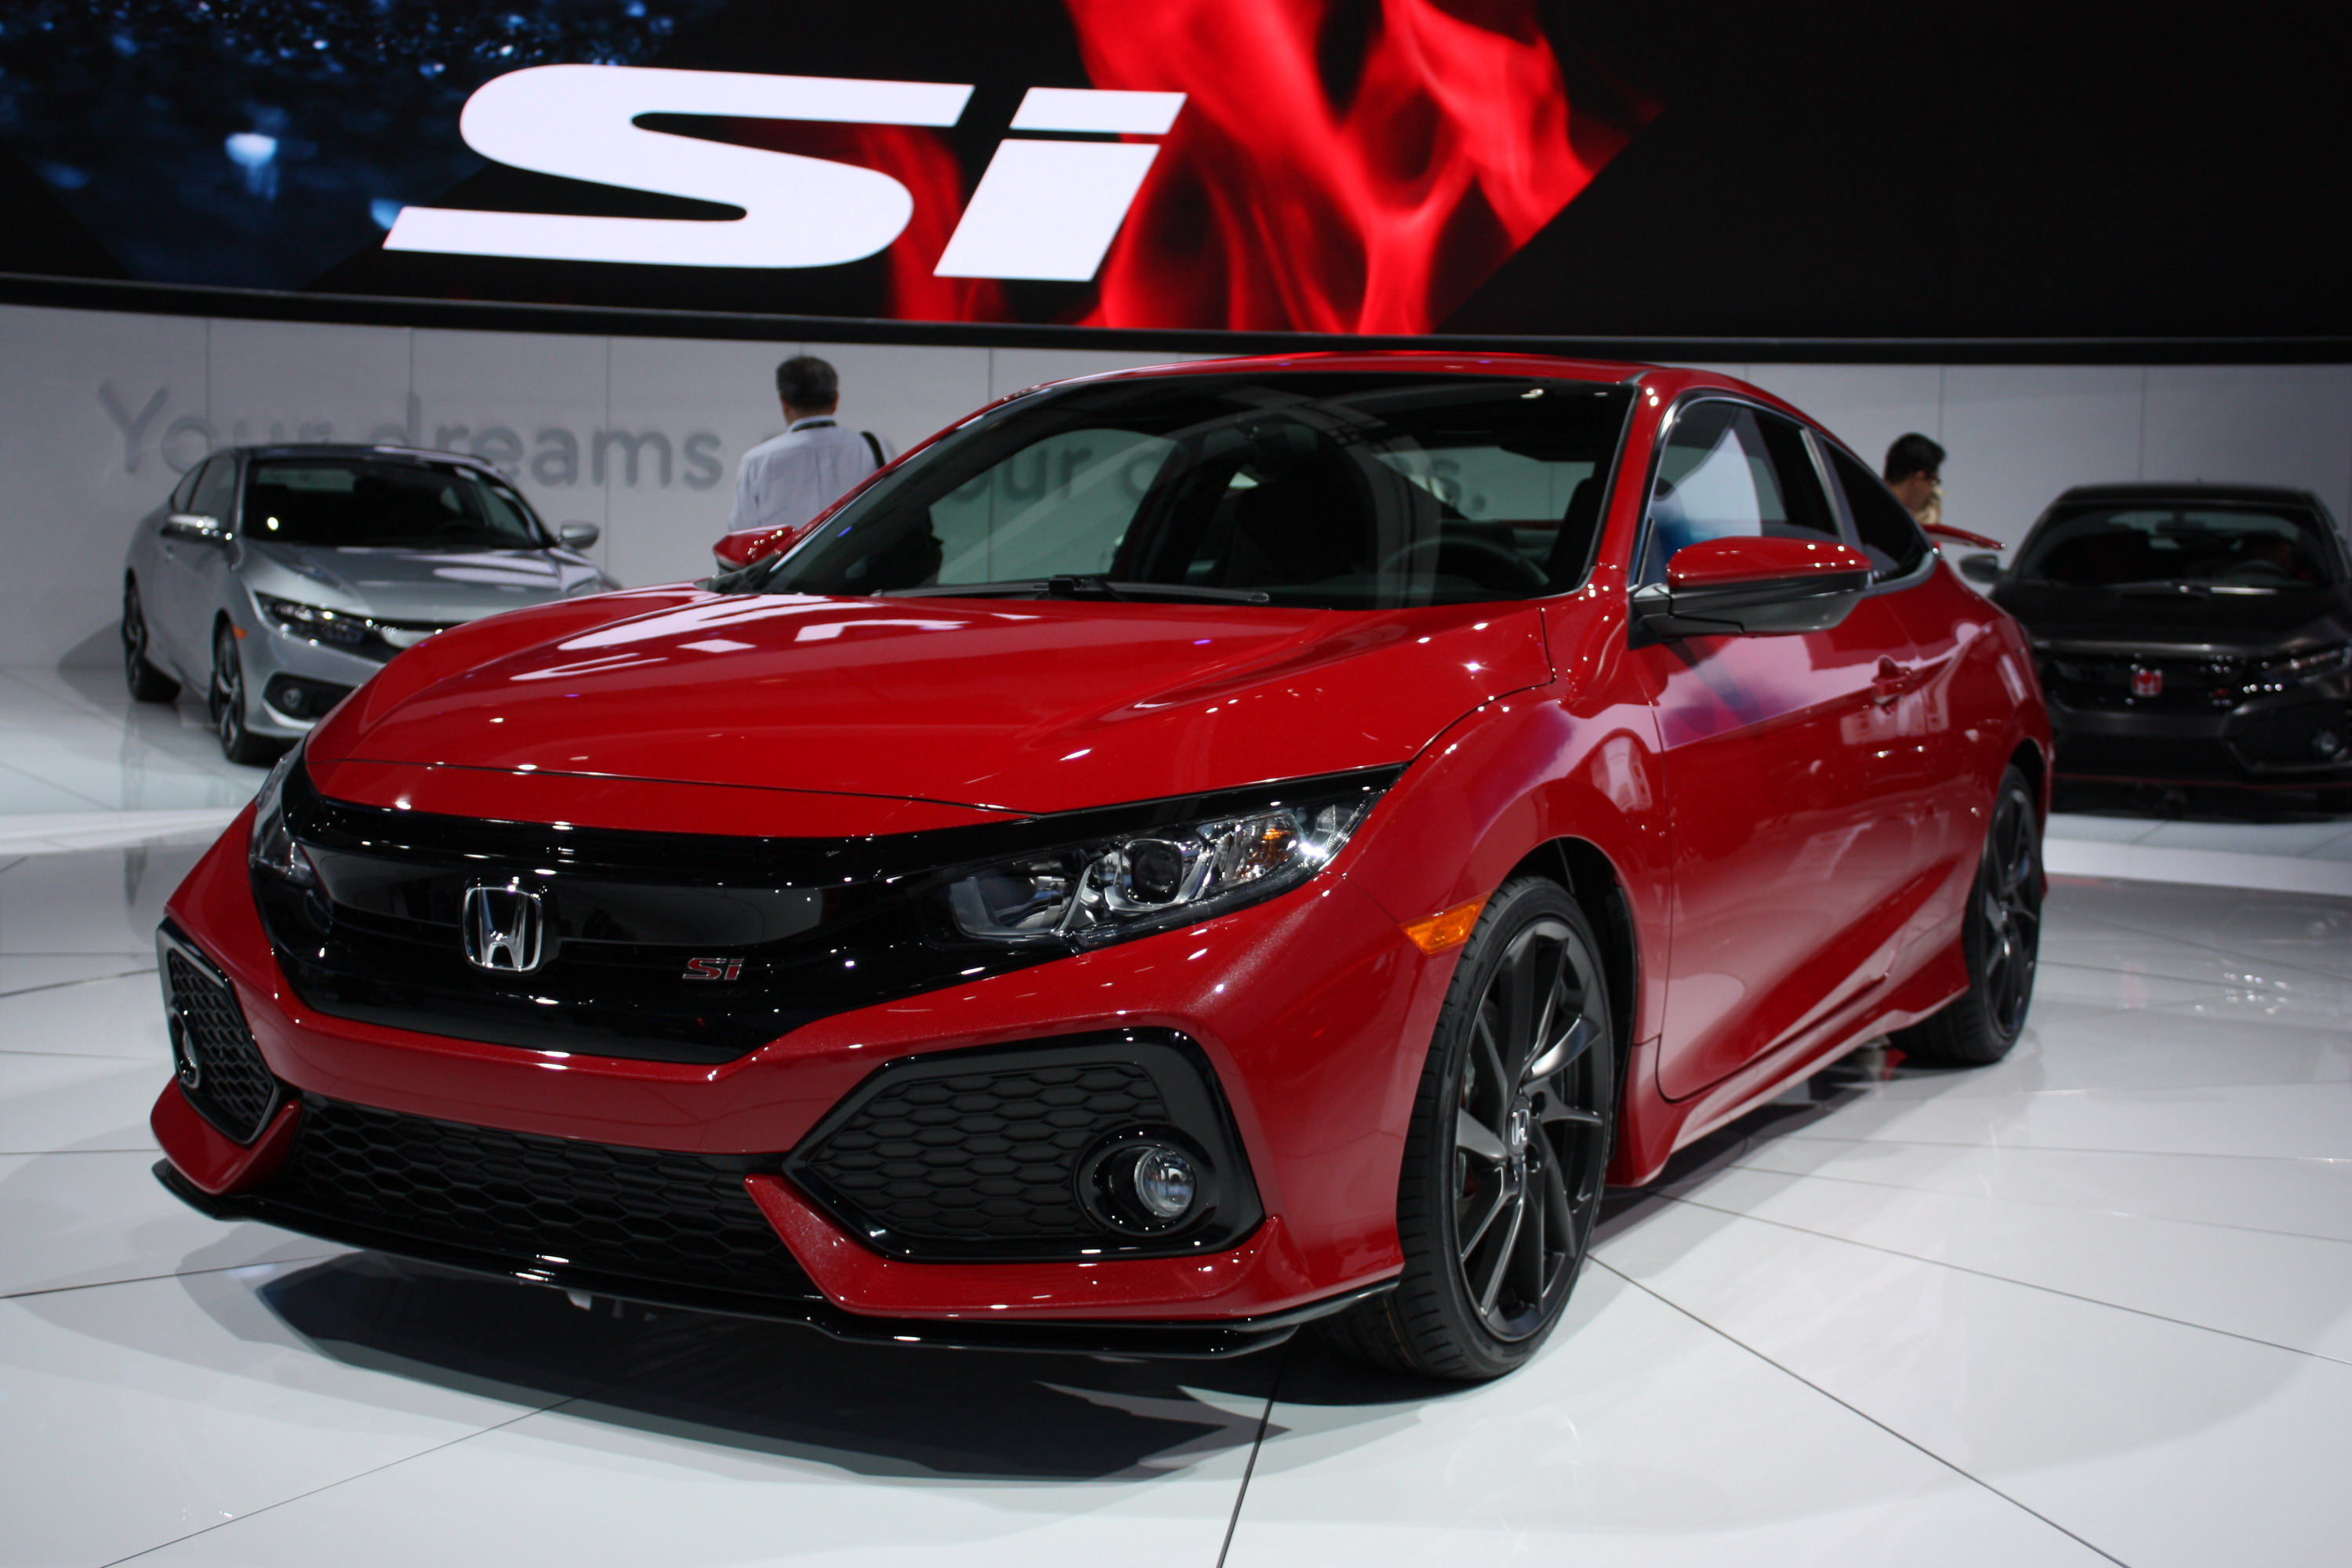 2017 honda civic si review top speed for Honda civic si near me